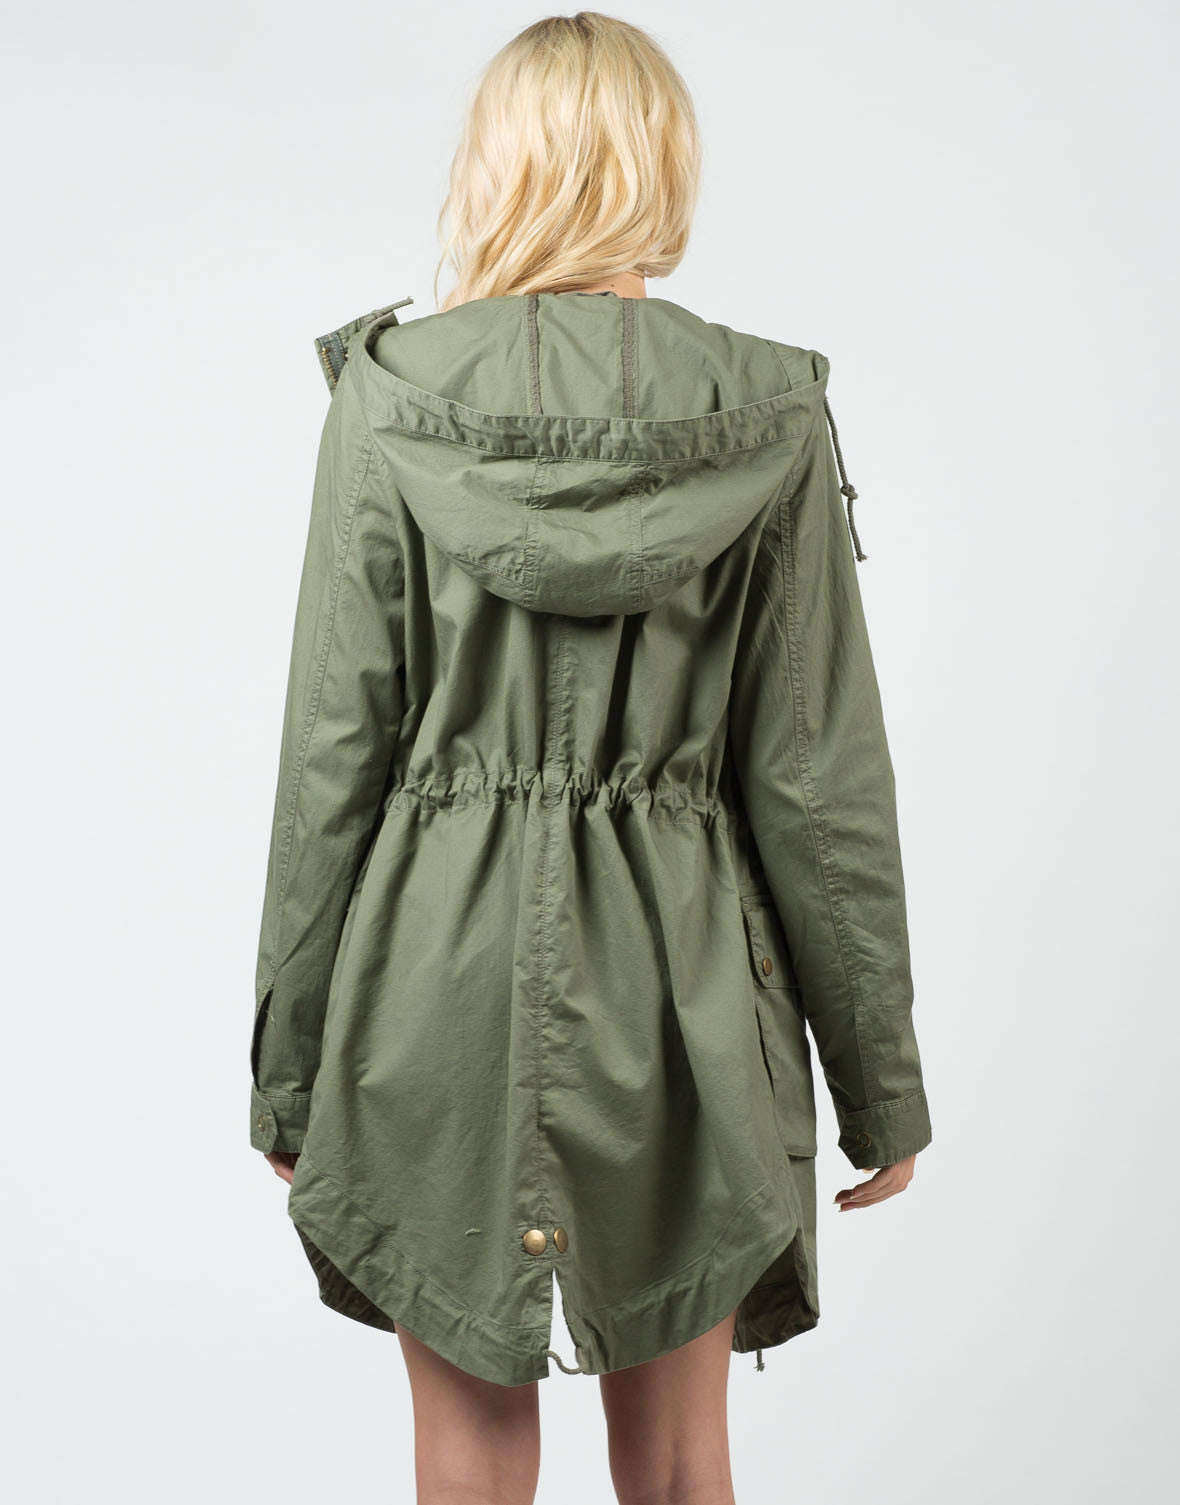 Back View of Military Anorak Jacket